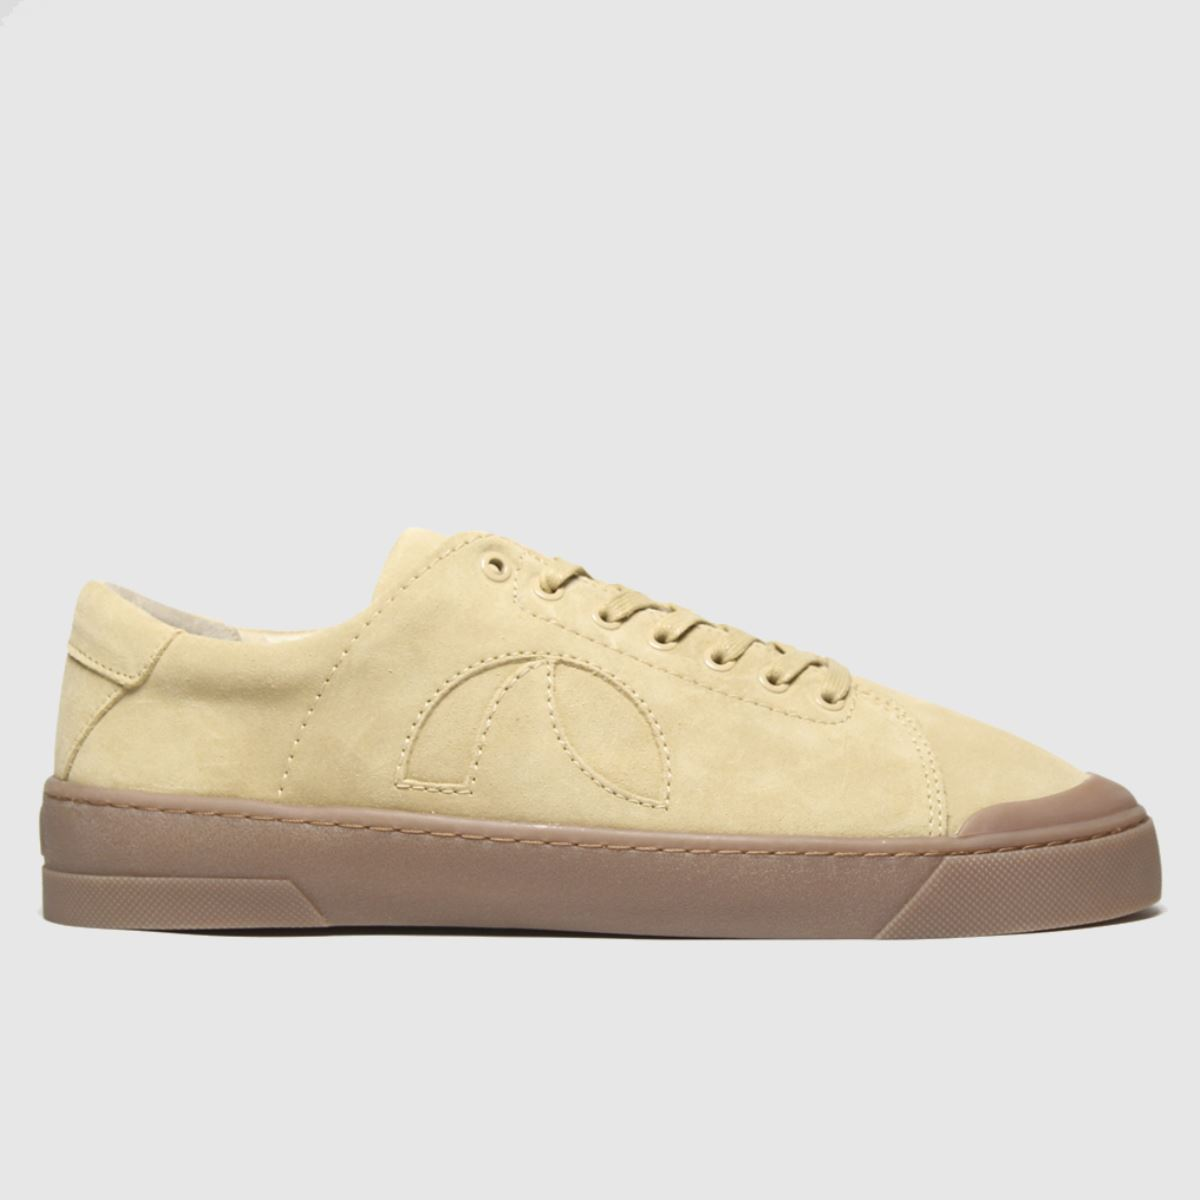 Roscomar Stone Blvd Suede Trainers